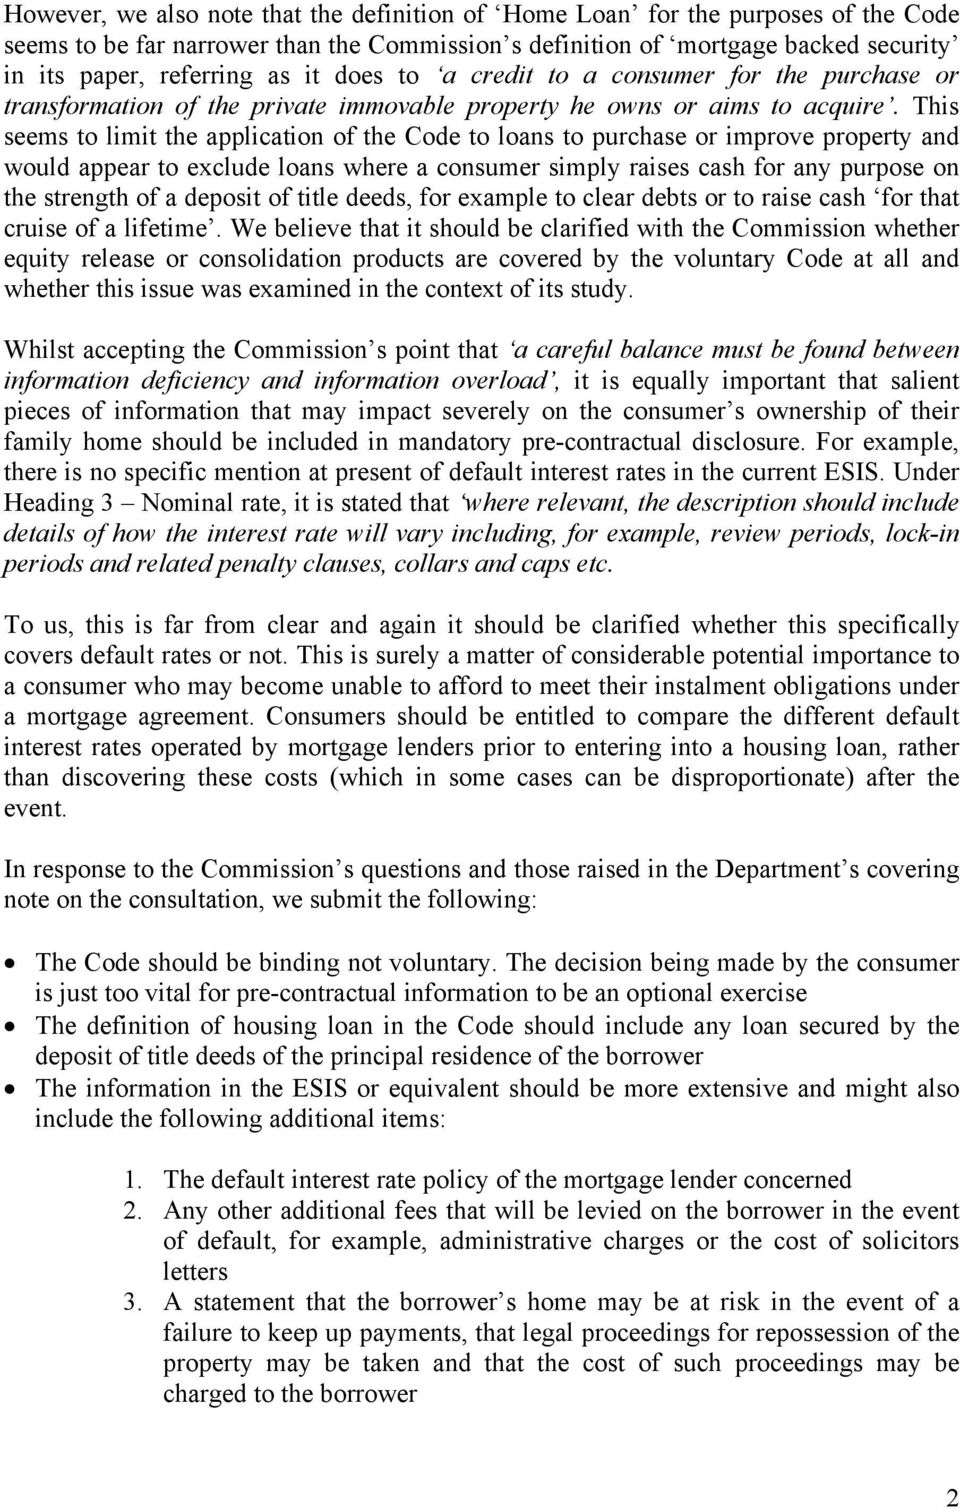 This seems to limit the application of the Code to loans to purchase or improve property and would appear to exclude loans where a consumer simply raises cash for any purpose on the strength of a